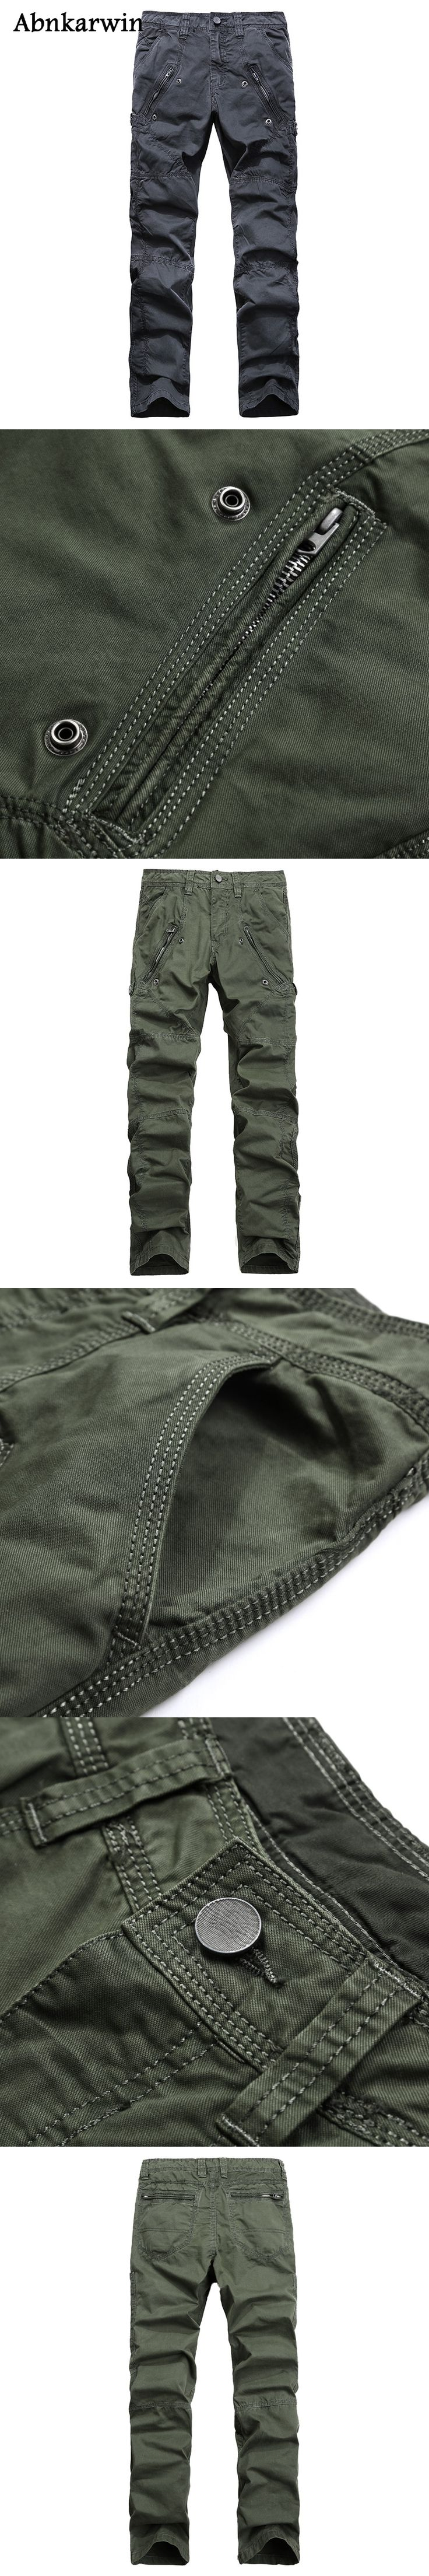 Abnkarwin 2017 New Brand Military Men Cargo Long Pants Multi Pockets Men's Pants Casual Baggy Trousers Overalls Army Pants